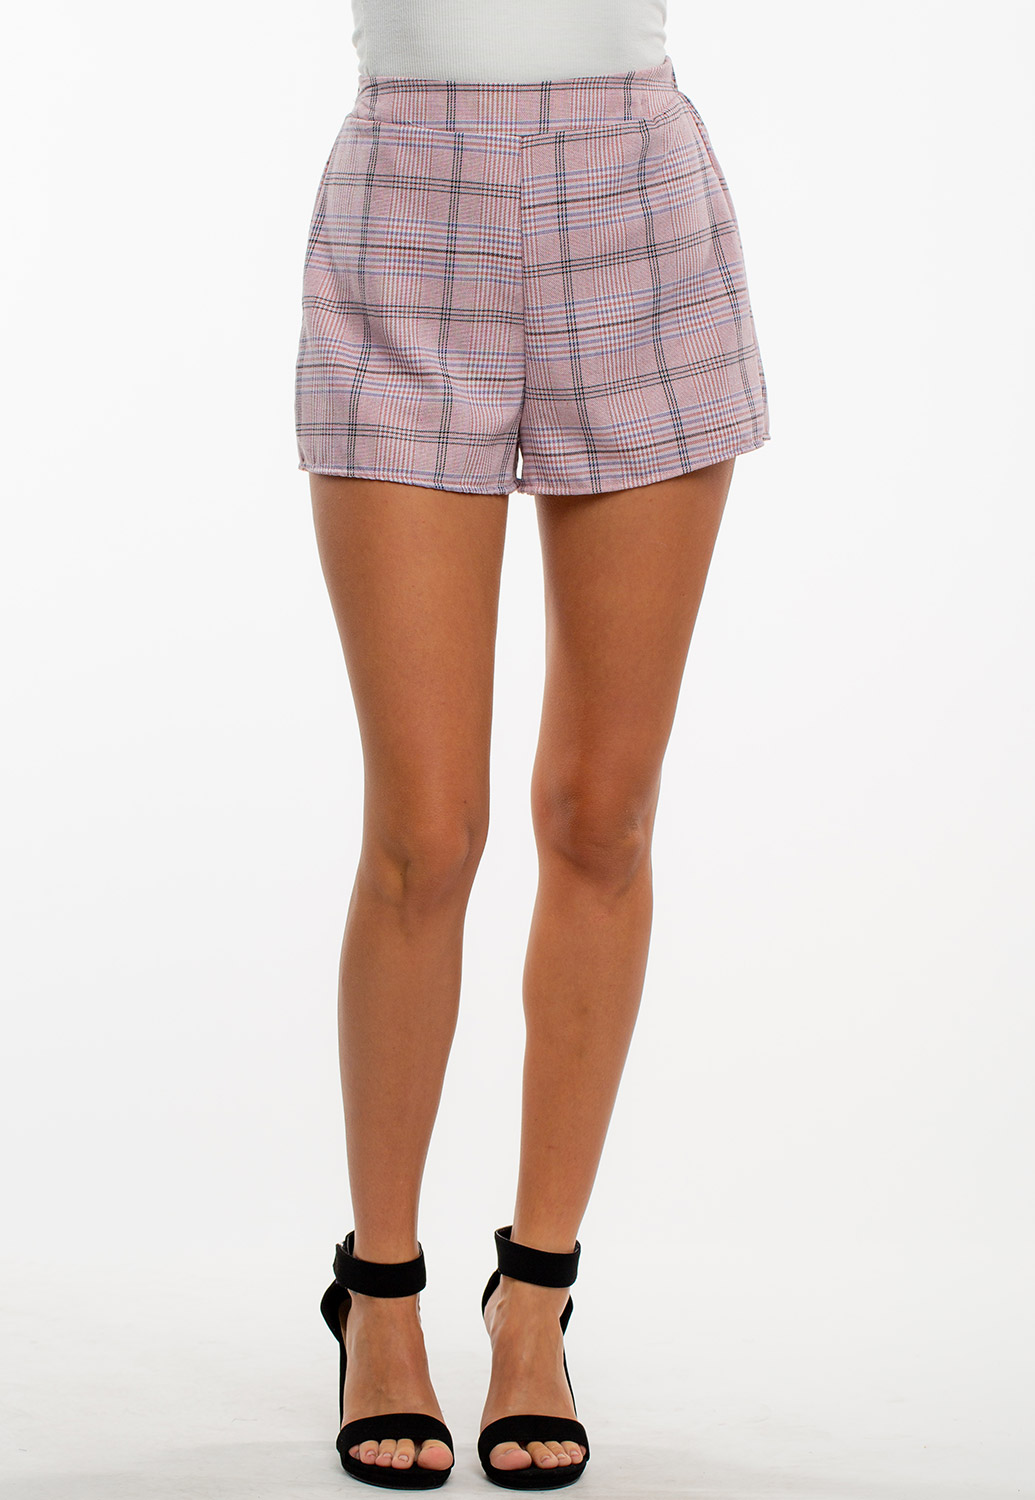 Summer Dressy High-Rise Plaid Shorts